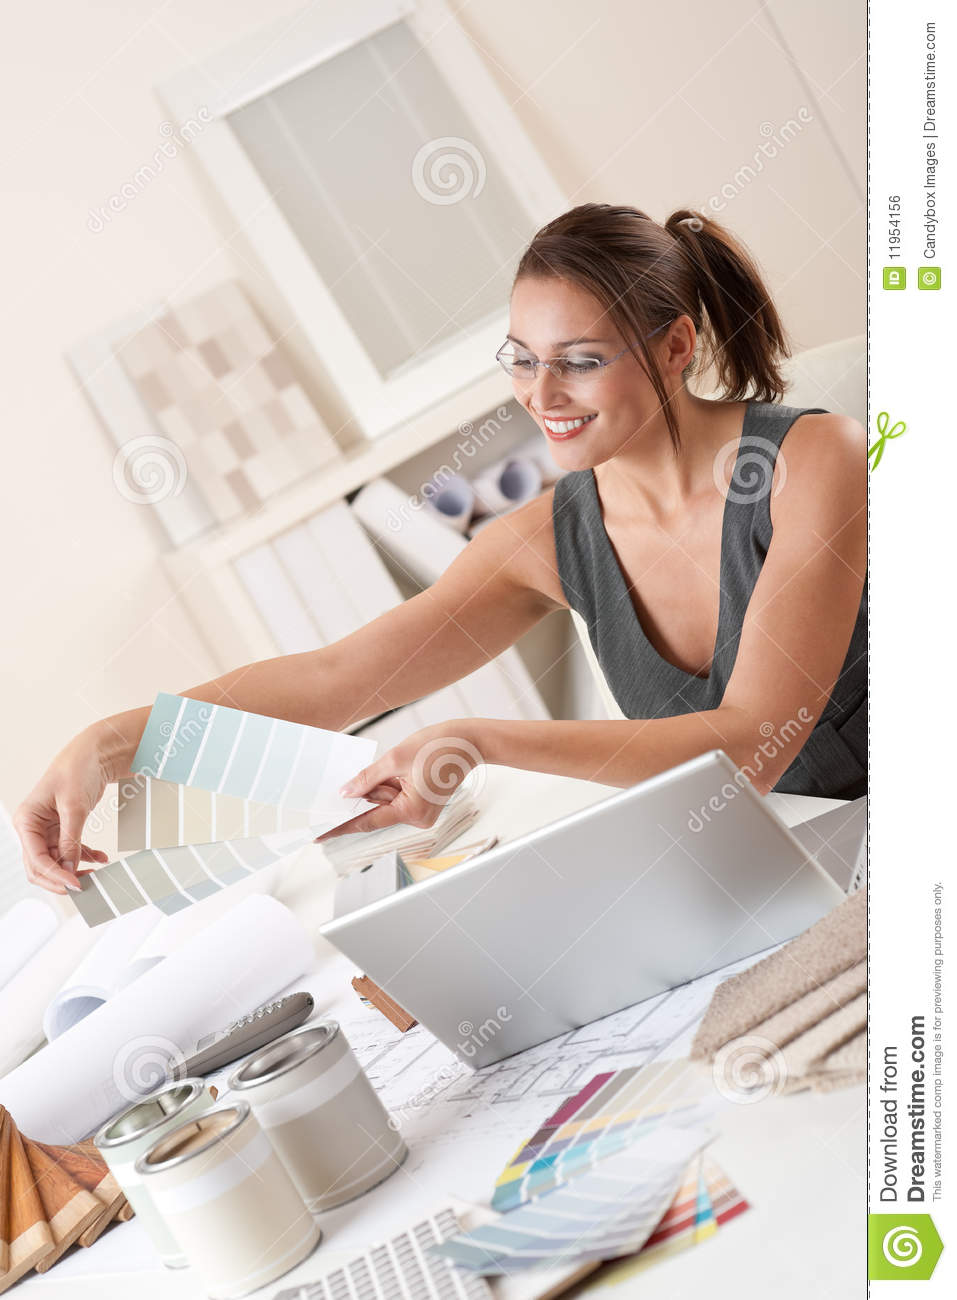 Female Interior Designer Working At Office Royalty Free